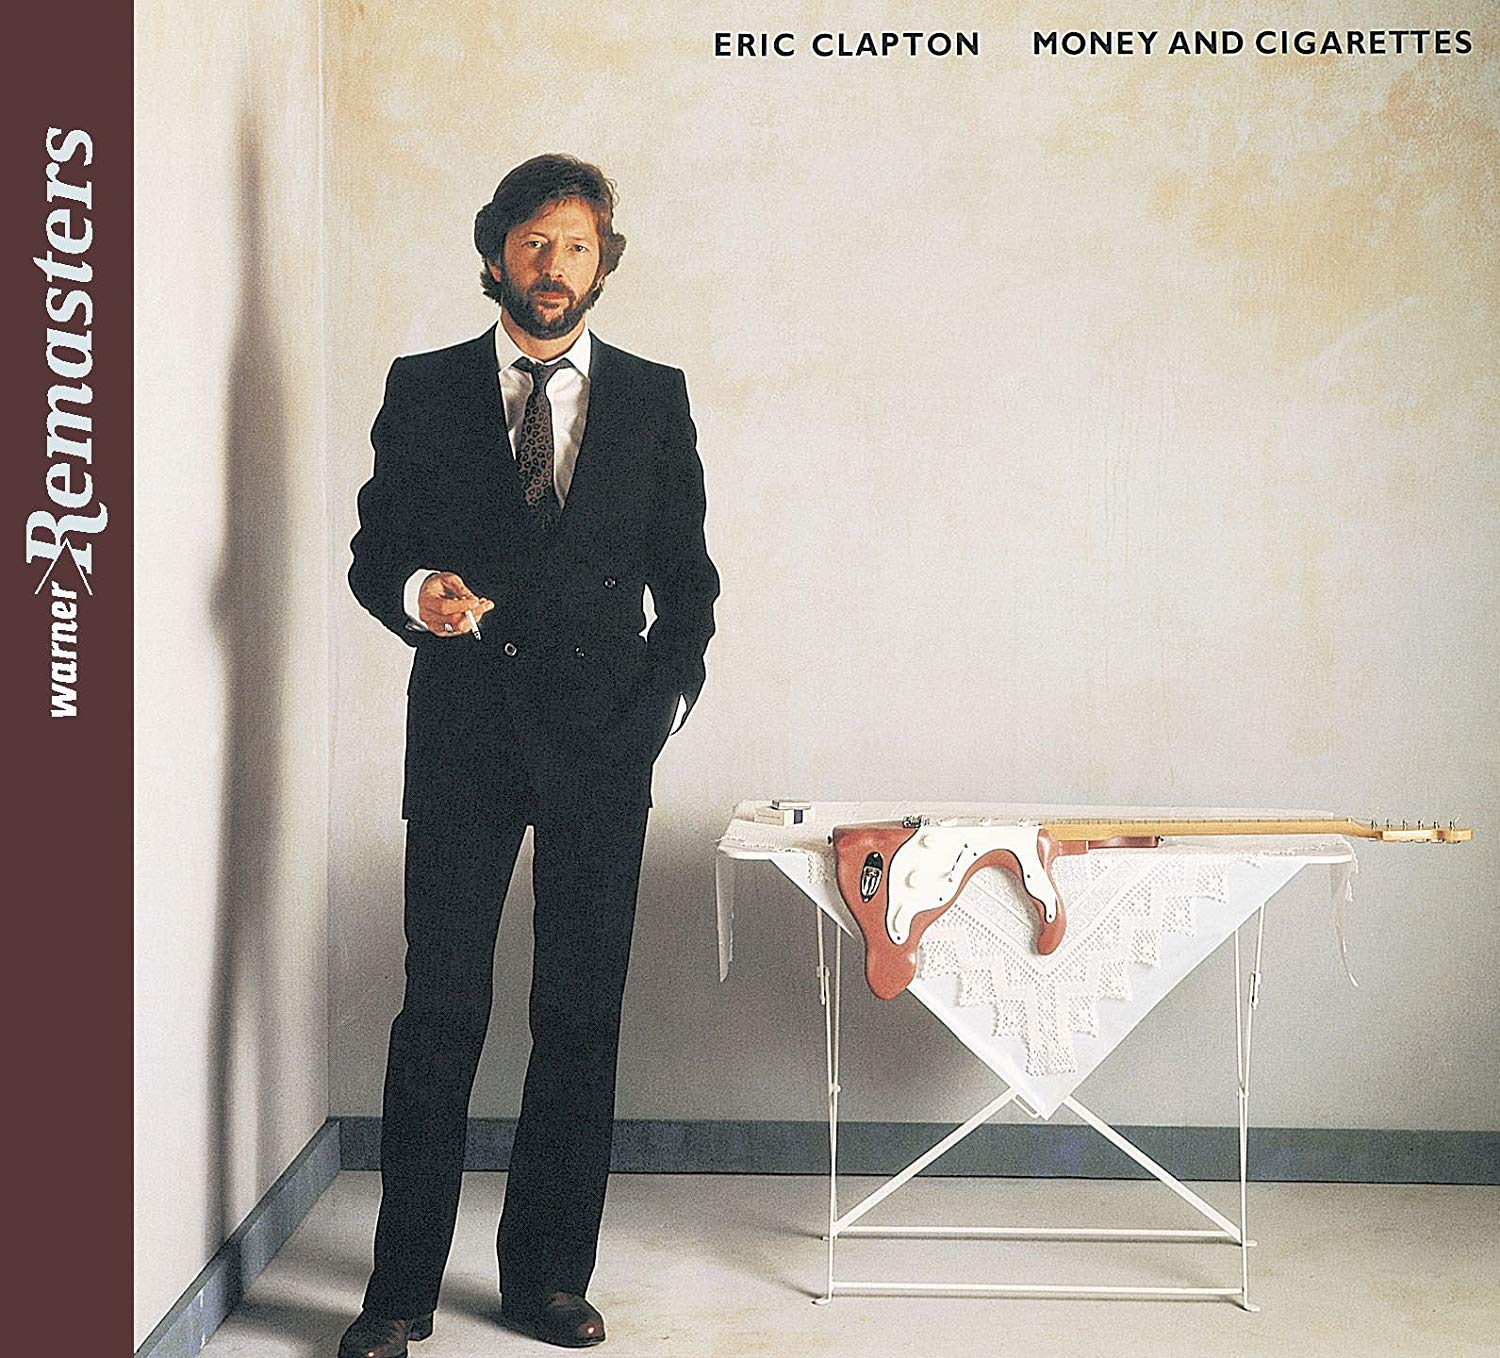 Vinilo Eric Clapton MONEY AND CIGARETTES